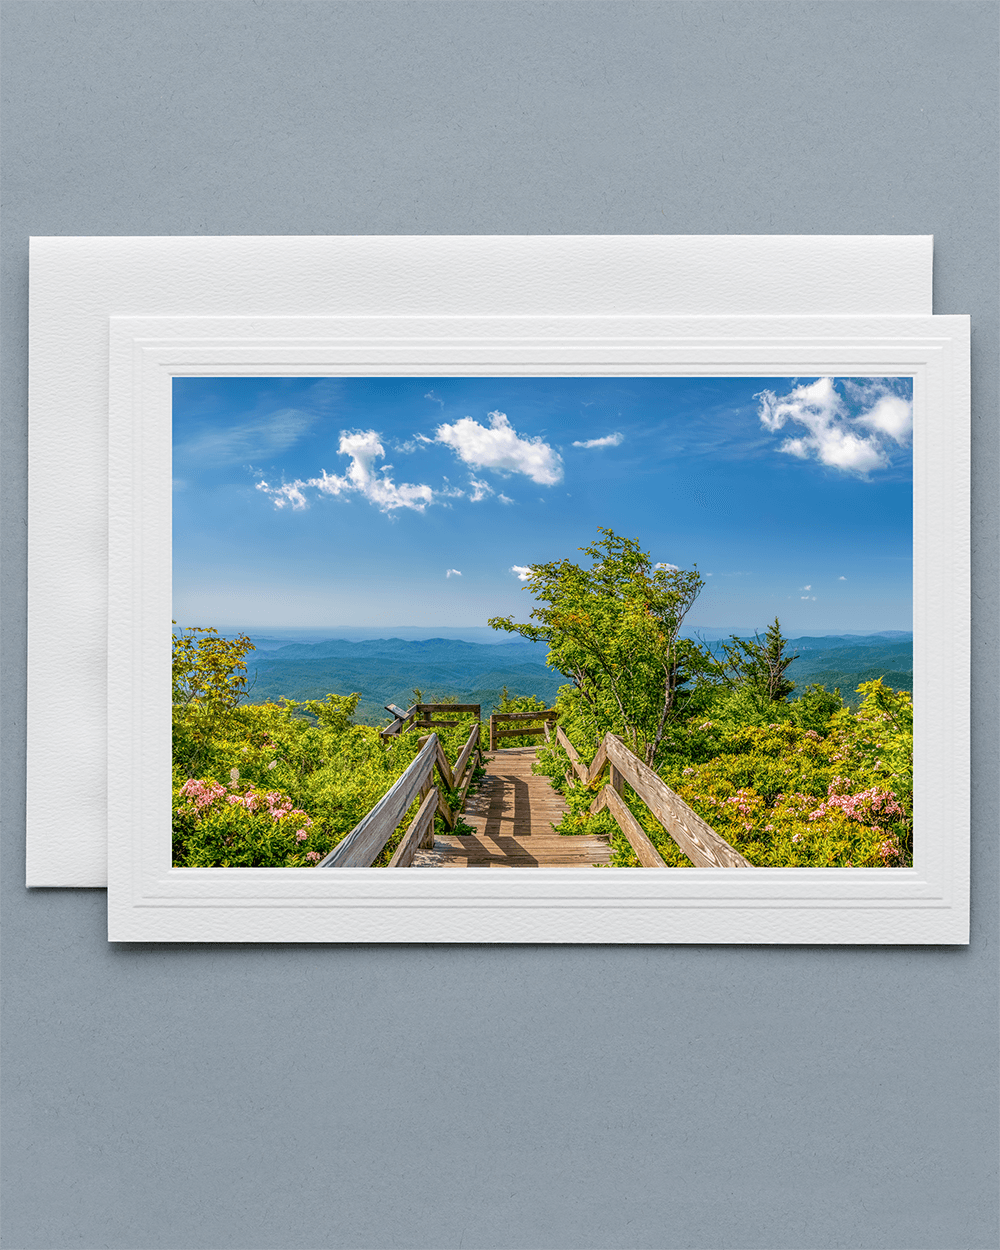 Send a lovely Greeting Card with a real photograph of the Rough Ridge Overlook - All Greeting Cards are handmade by us in the U.S.A.